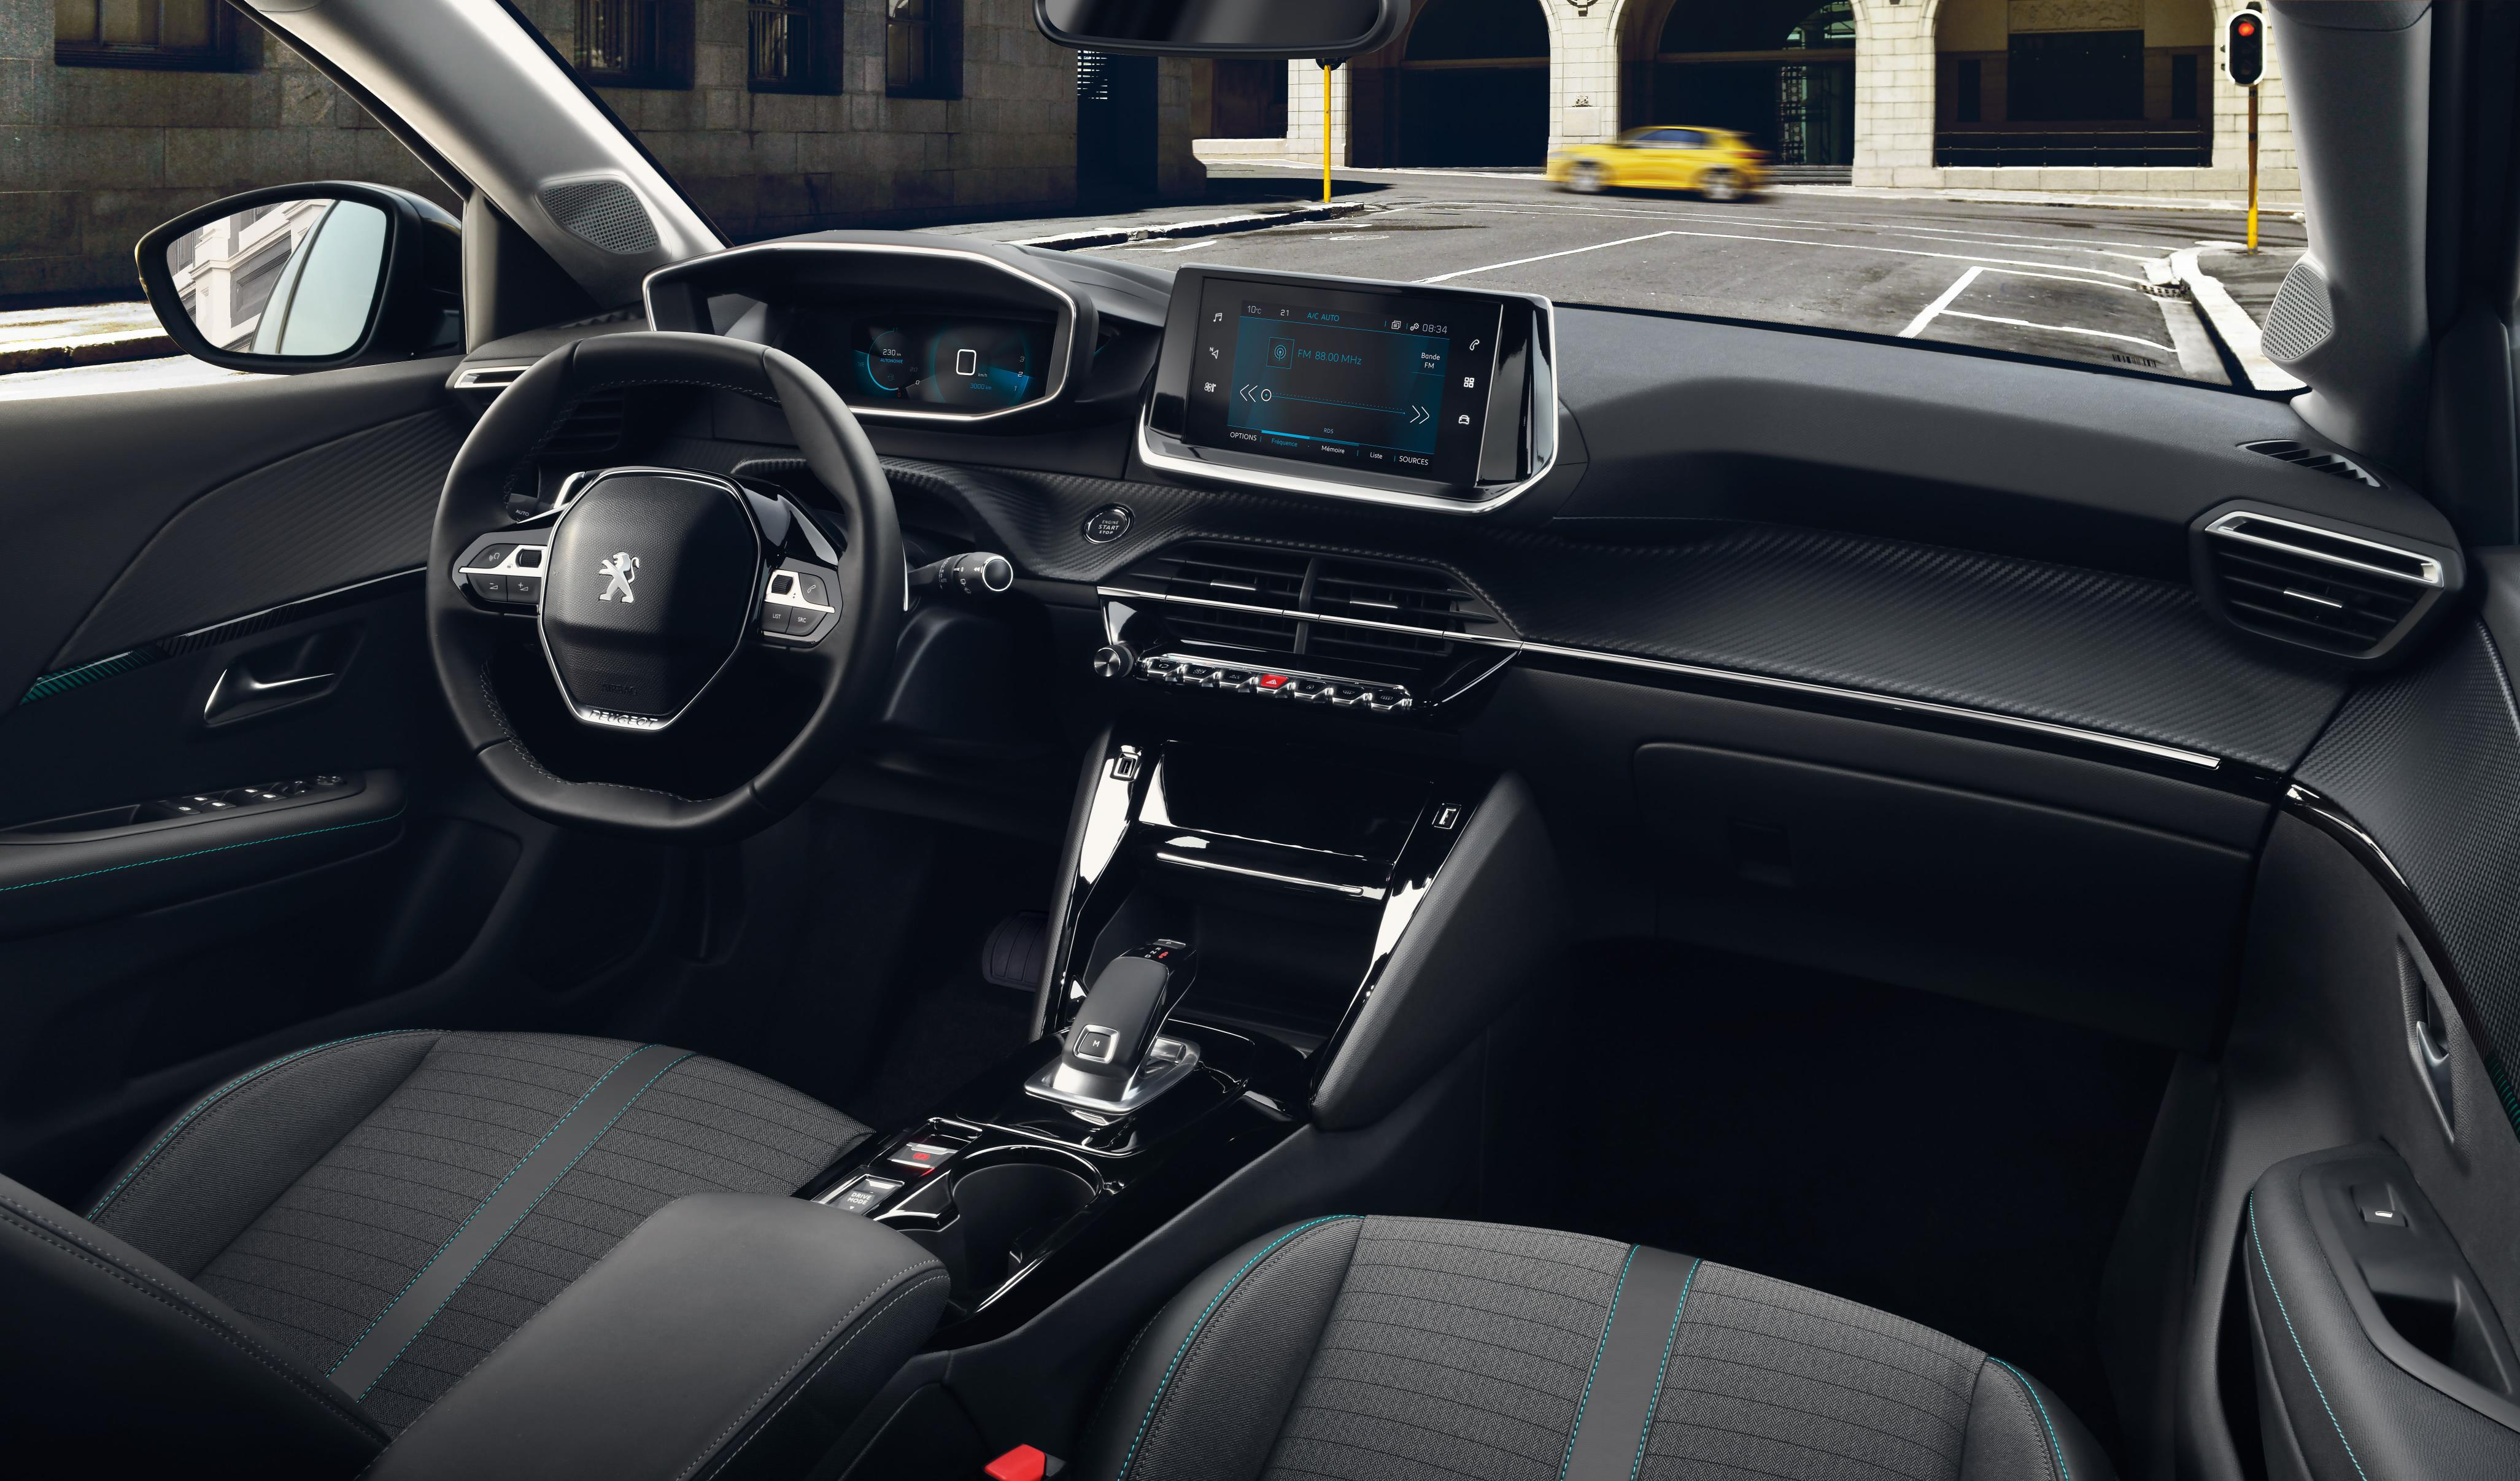 The 208's interior features many high-end finishes